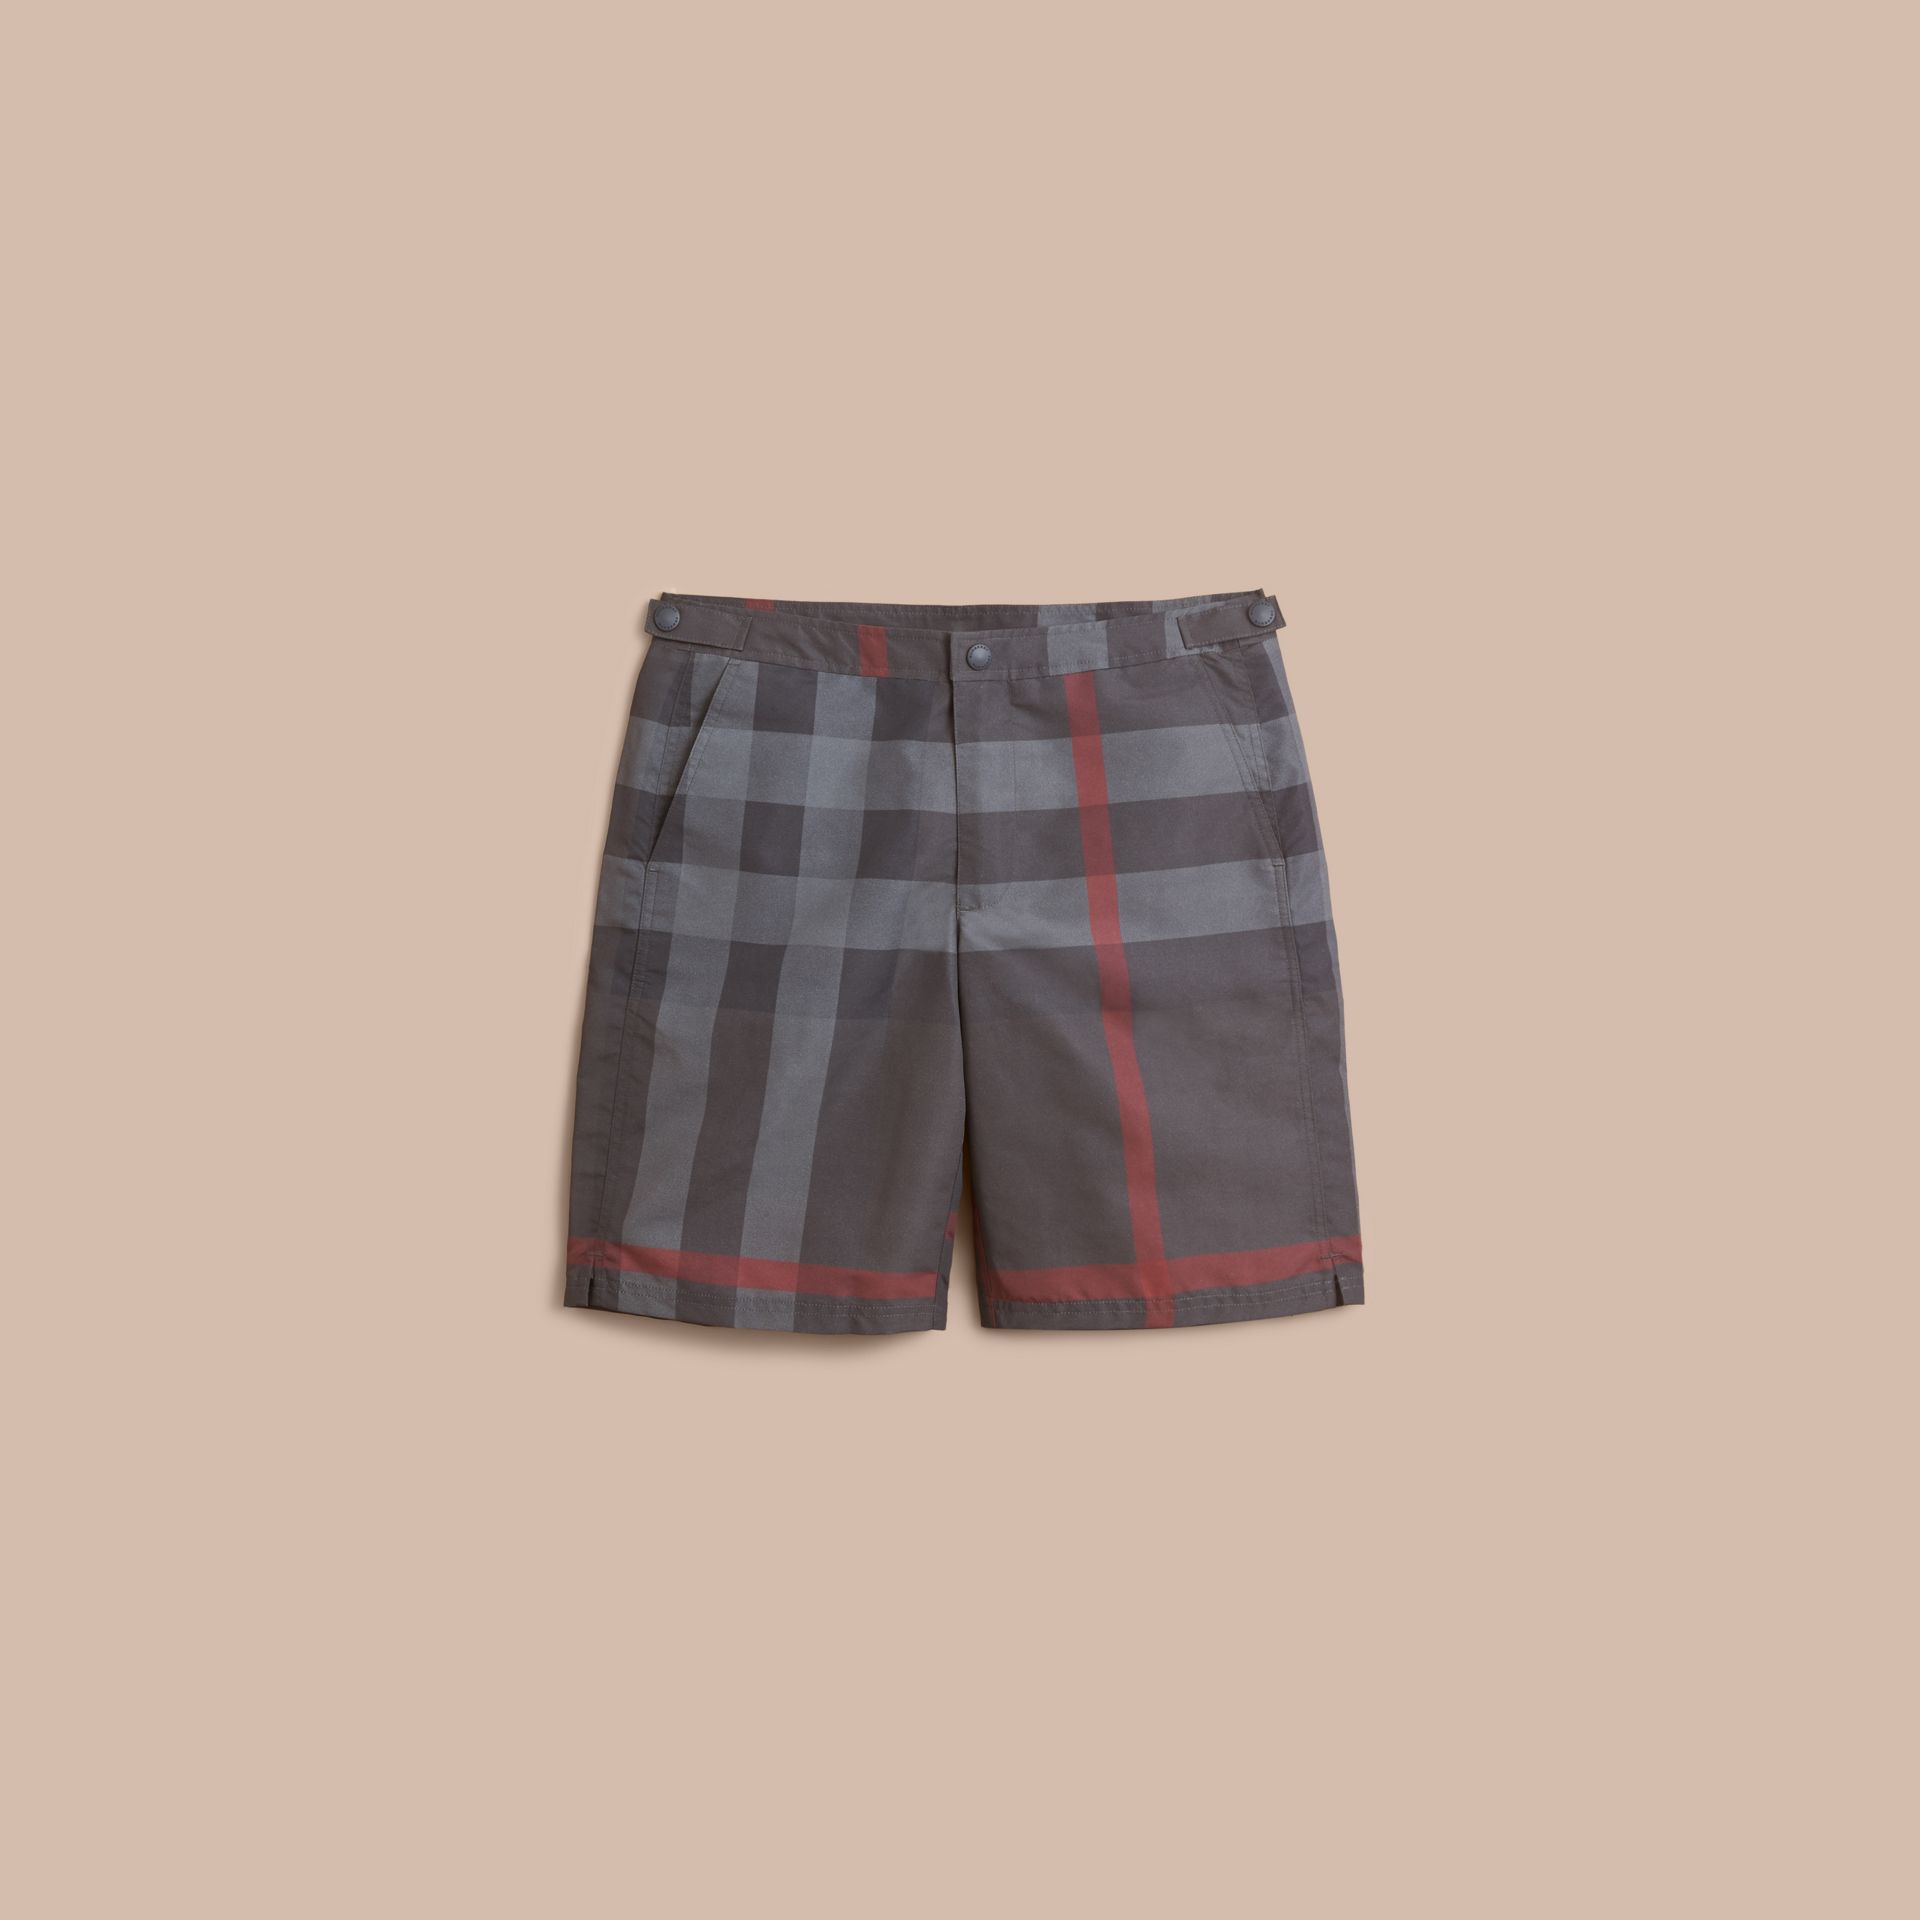 Short de bain technique ajusté à motif check (Anthracite Sombre) - Homme | Burberry - photo de la galerie 1